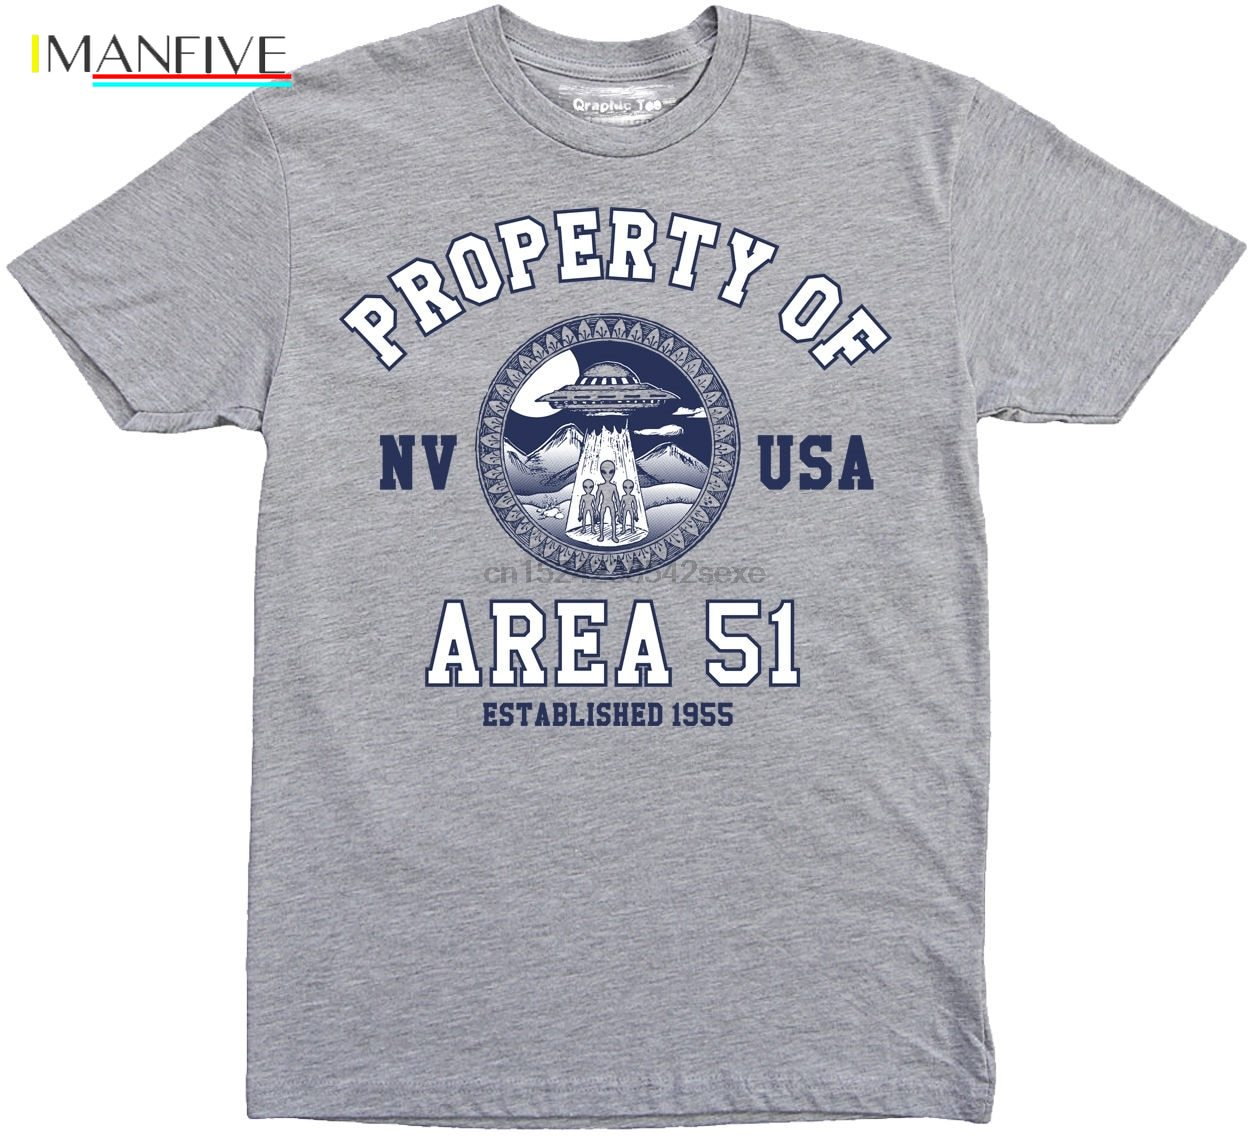 Area 51 t shirt Property of t-shirt UFO Nevada Alien